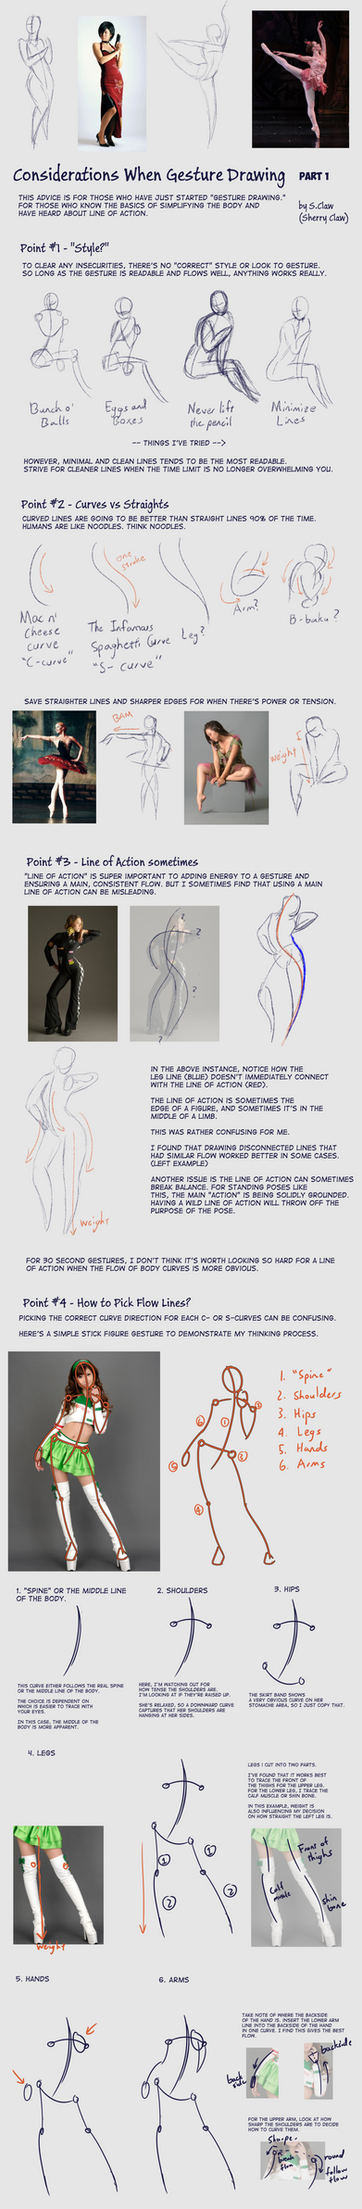 Considerations when Gesture Drawing - Part 1 by s-Claw